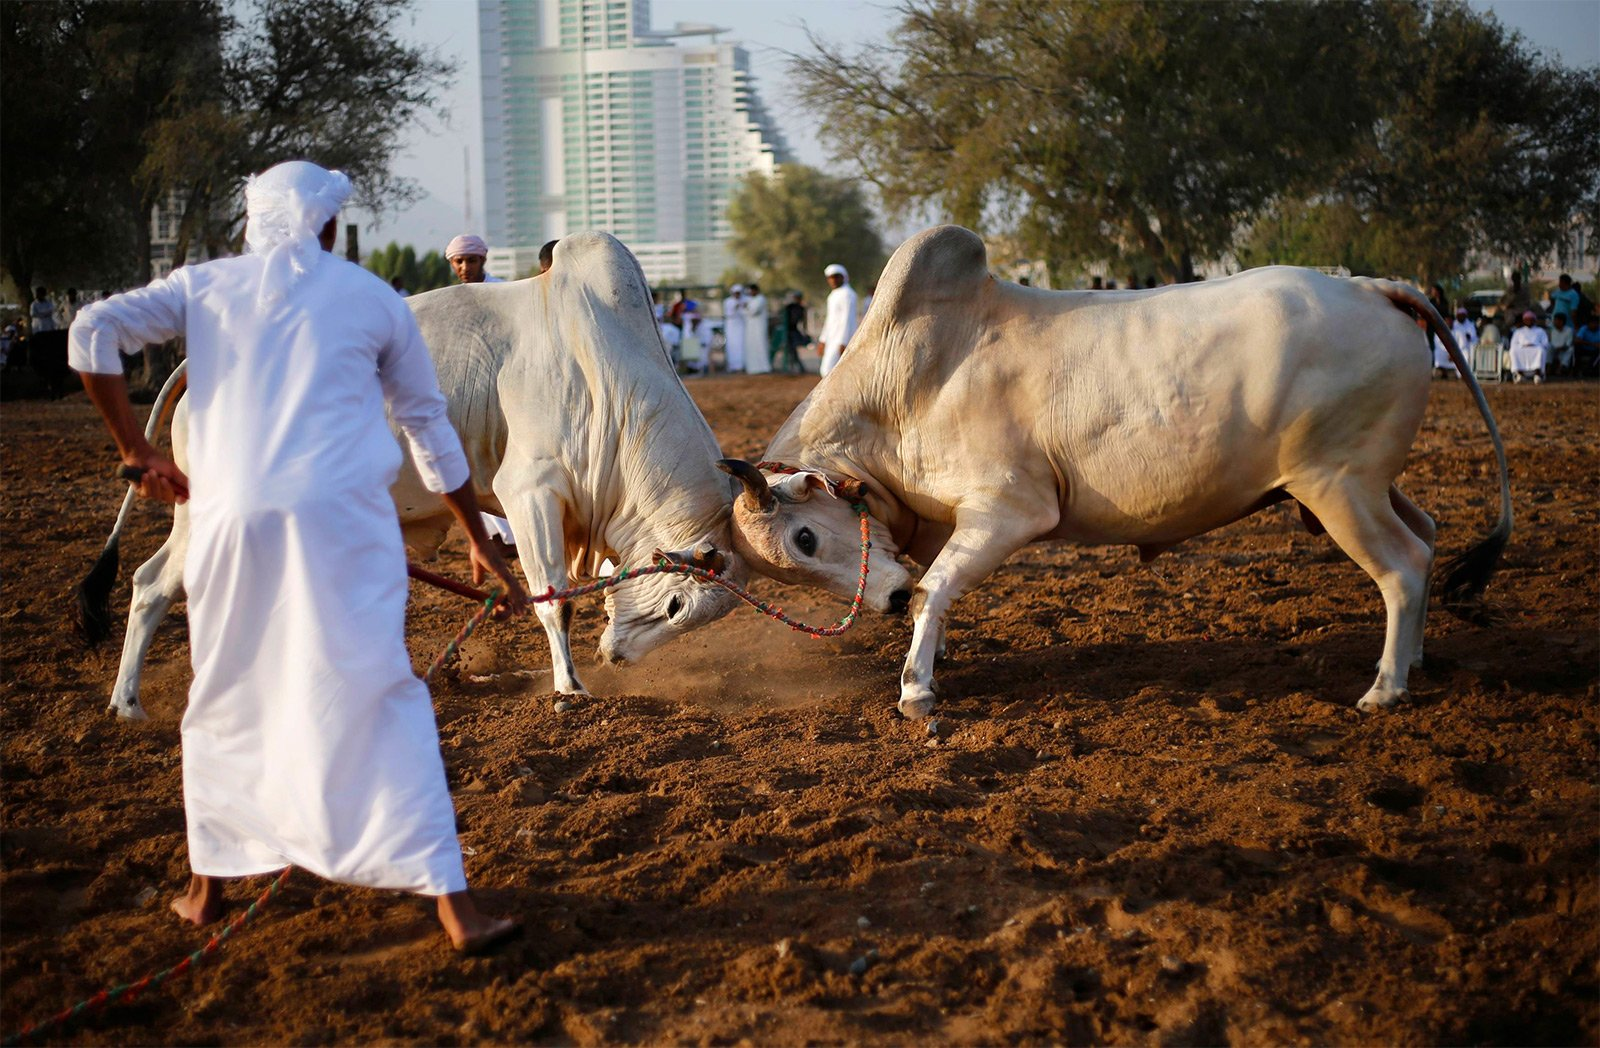 How to see bullfights in Fujairah